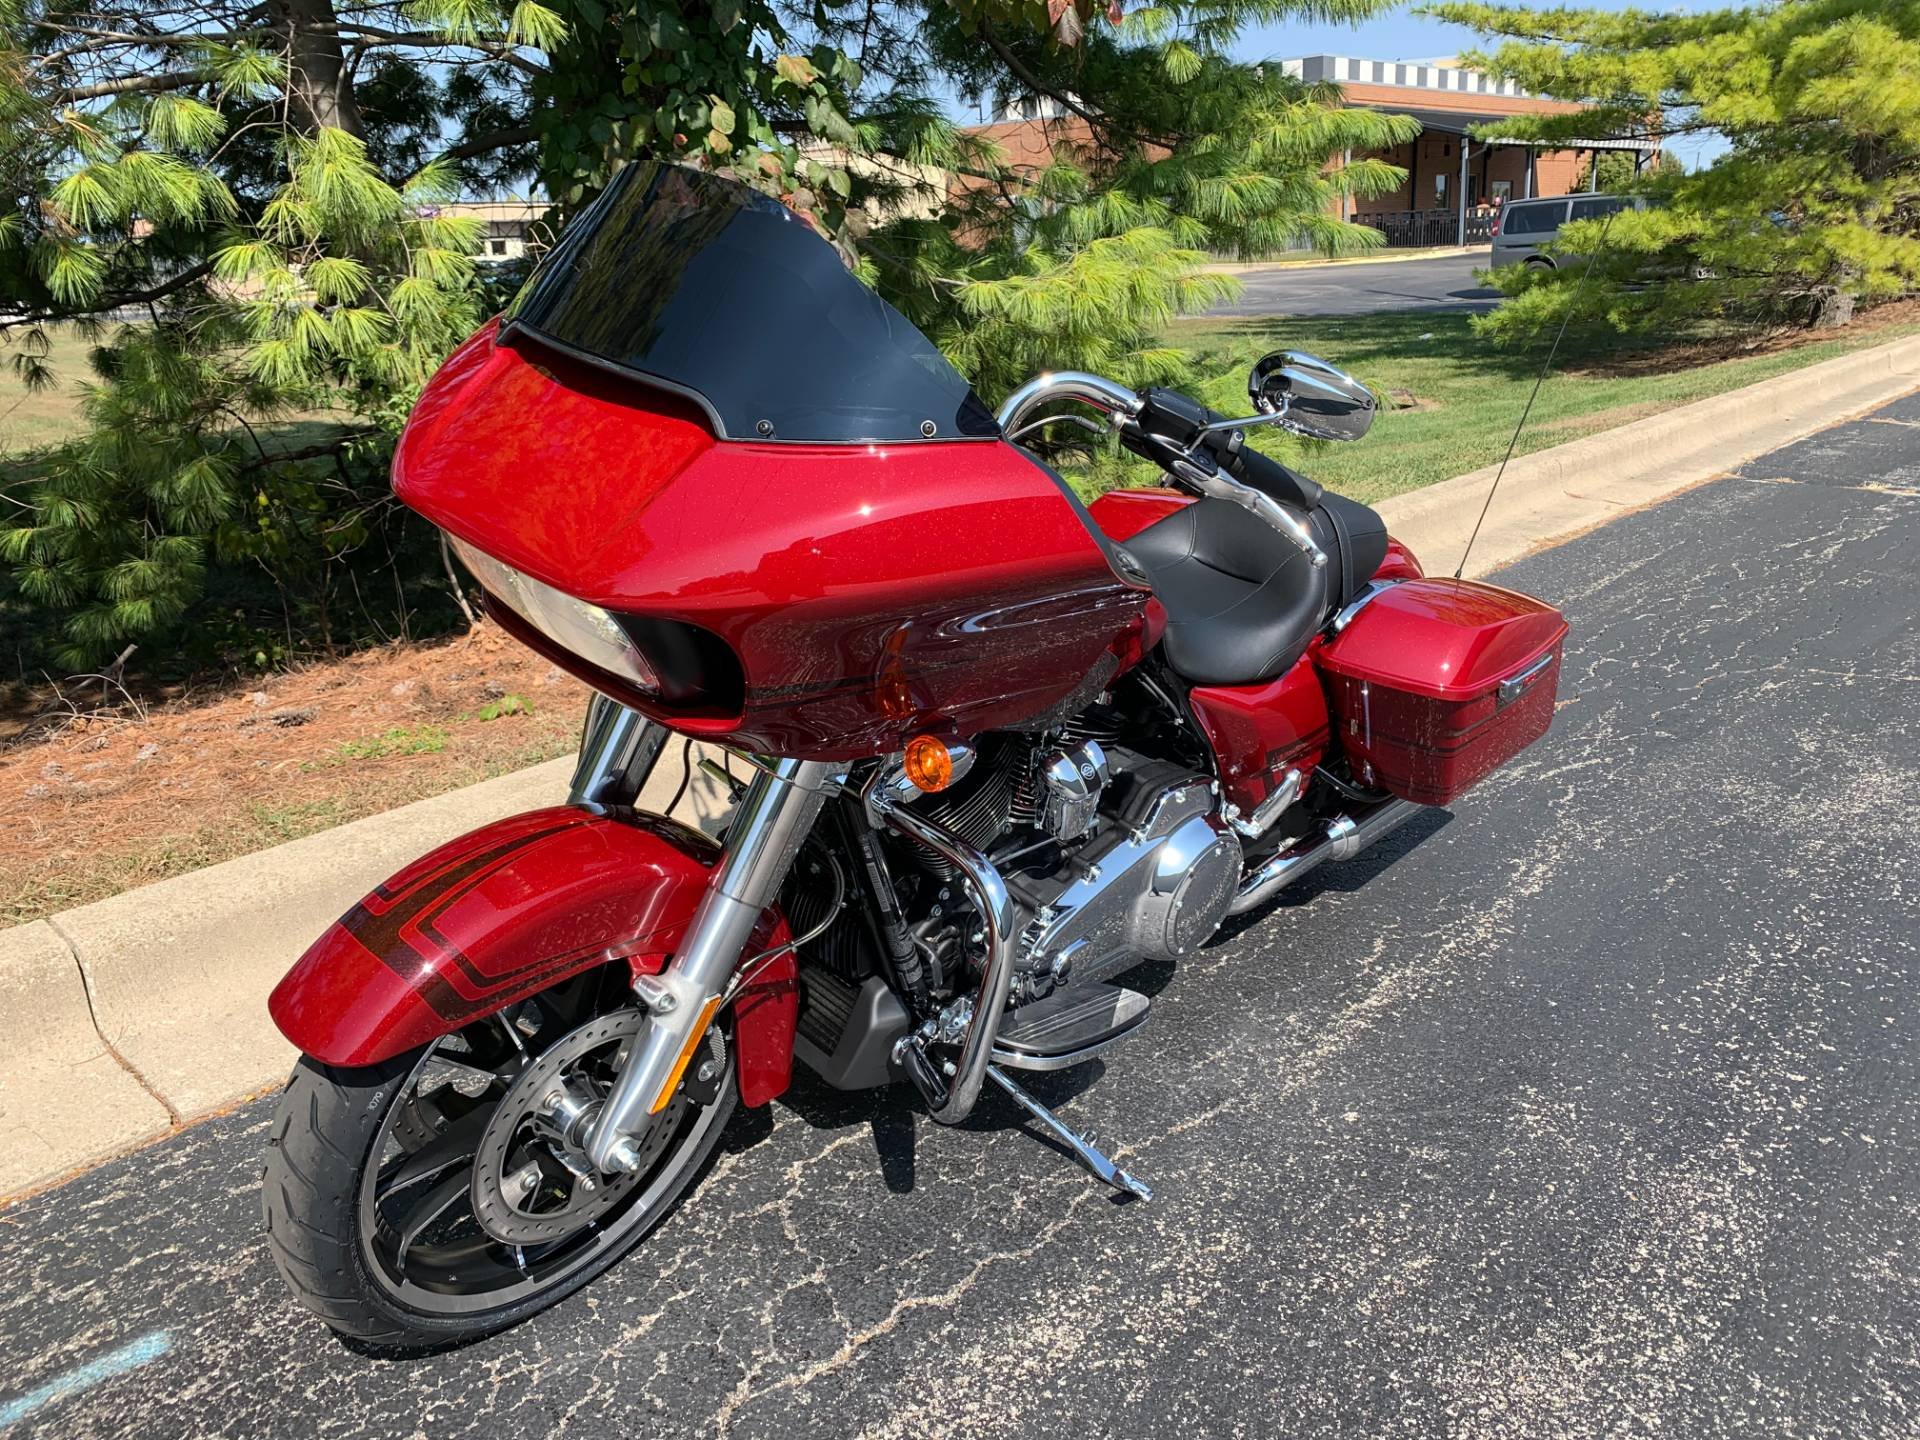 2020 Harley-Davidson Road Glide in Forsyth, Illinois - Photo 5